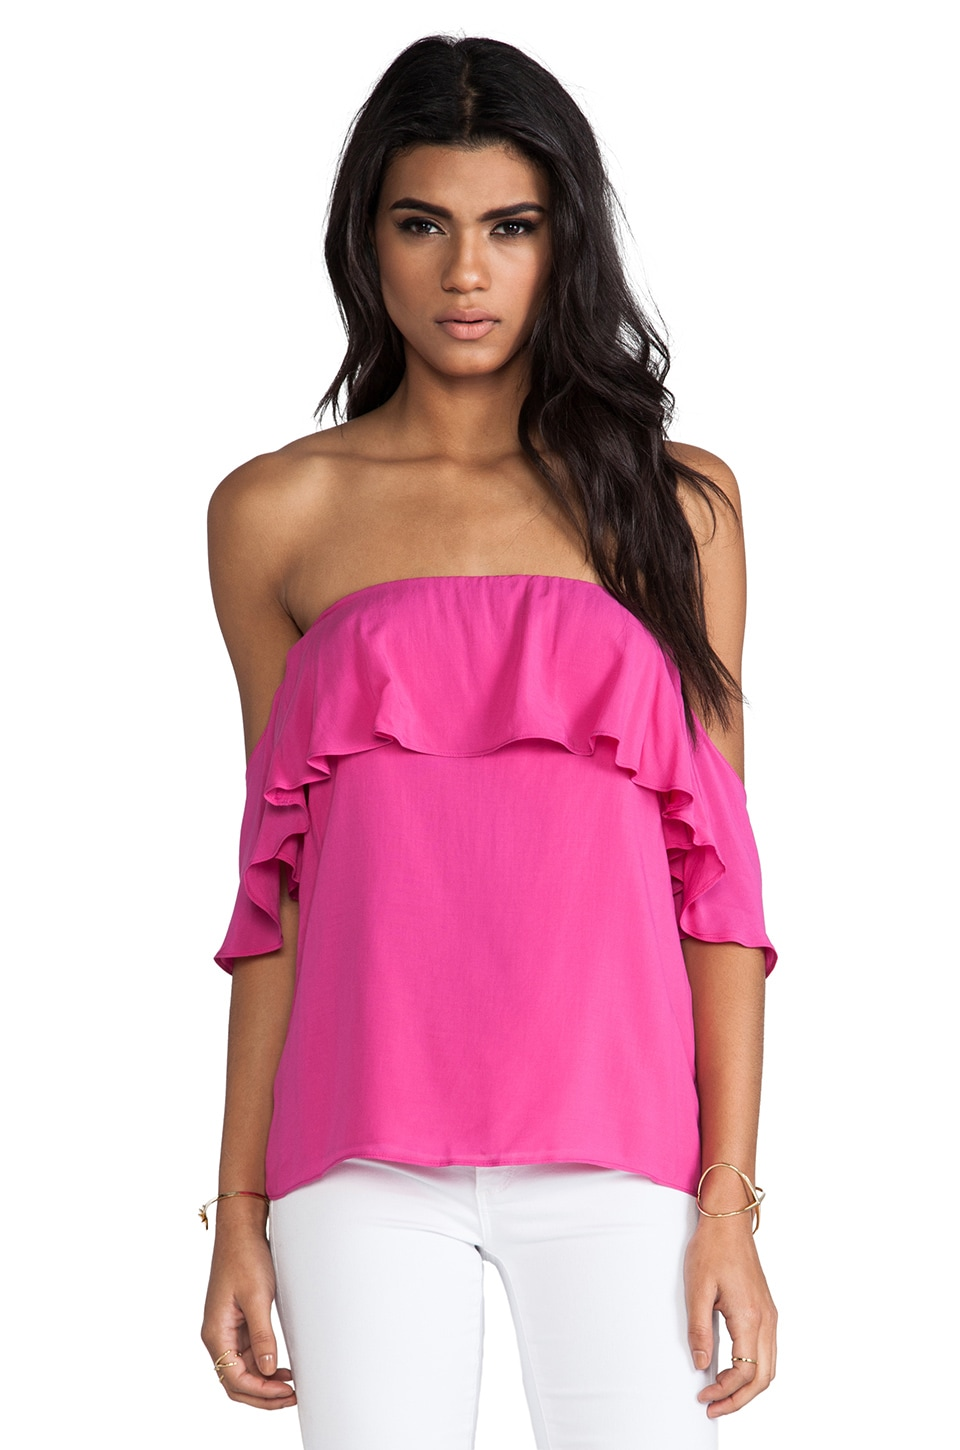 Boulee Emily Top in Mixed Pink